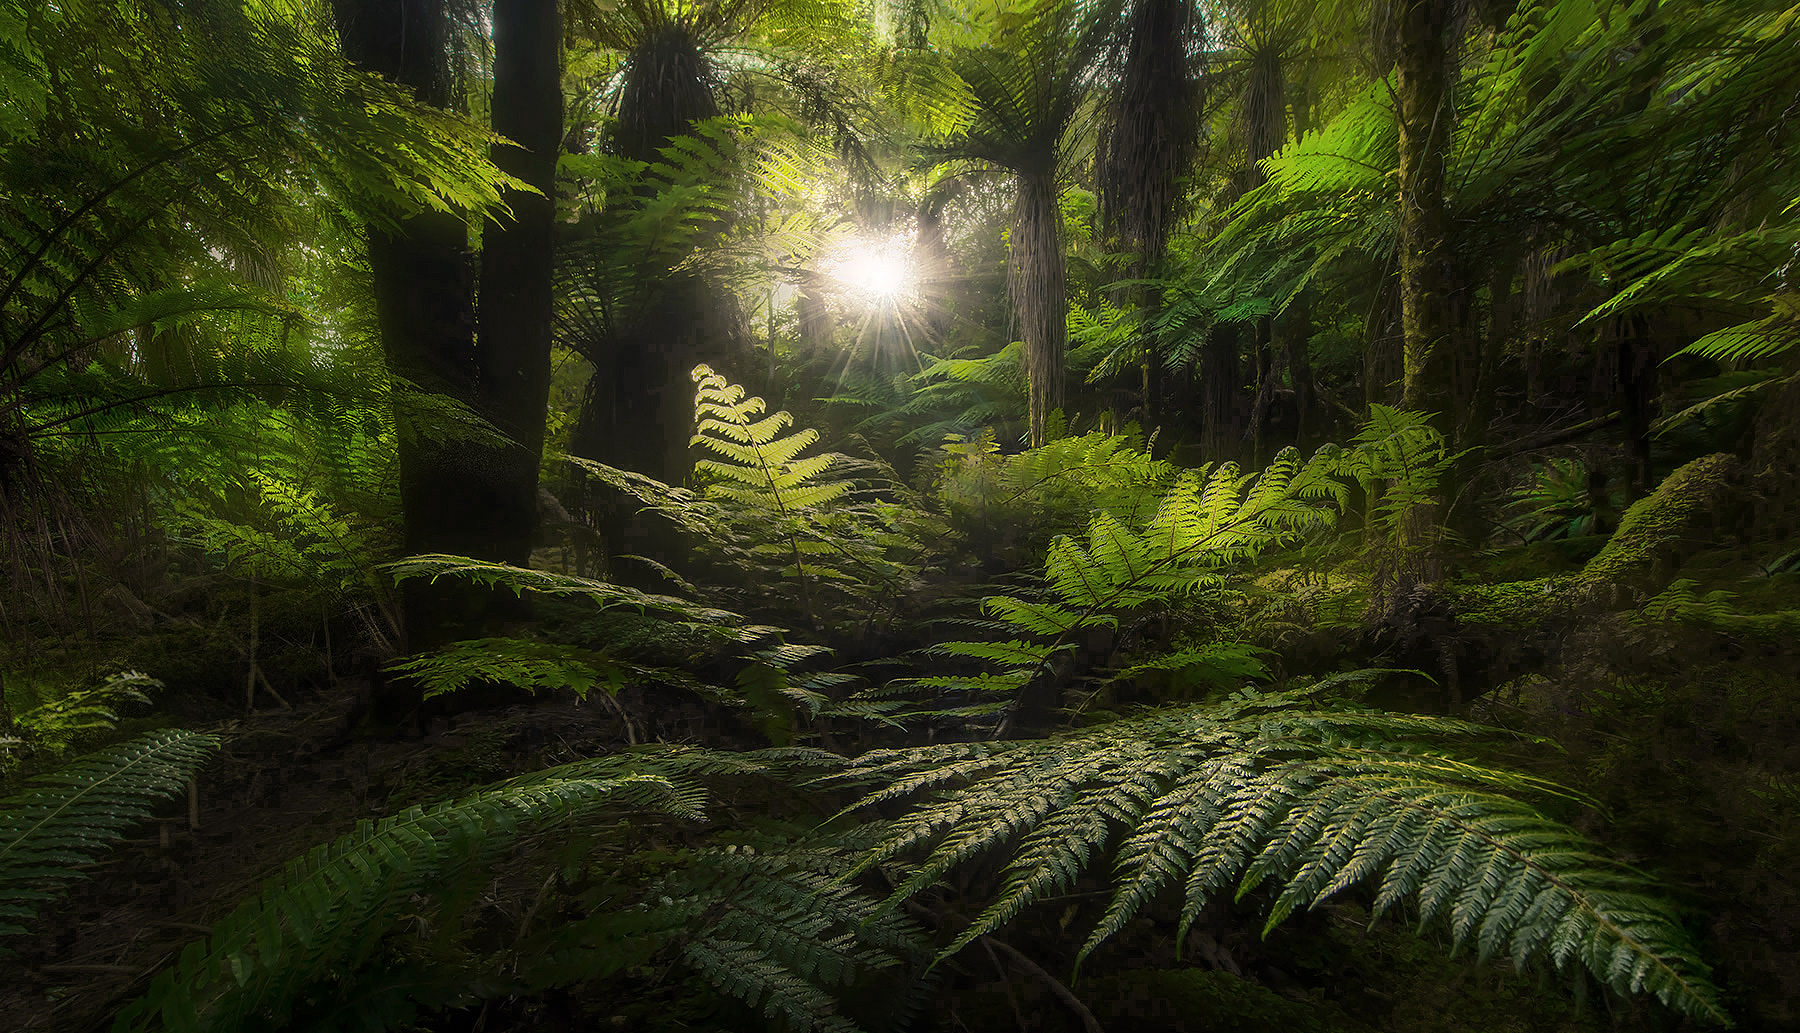 New Zealand, ferns, fern tree, photo